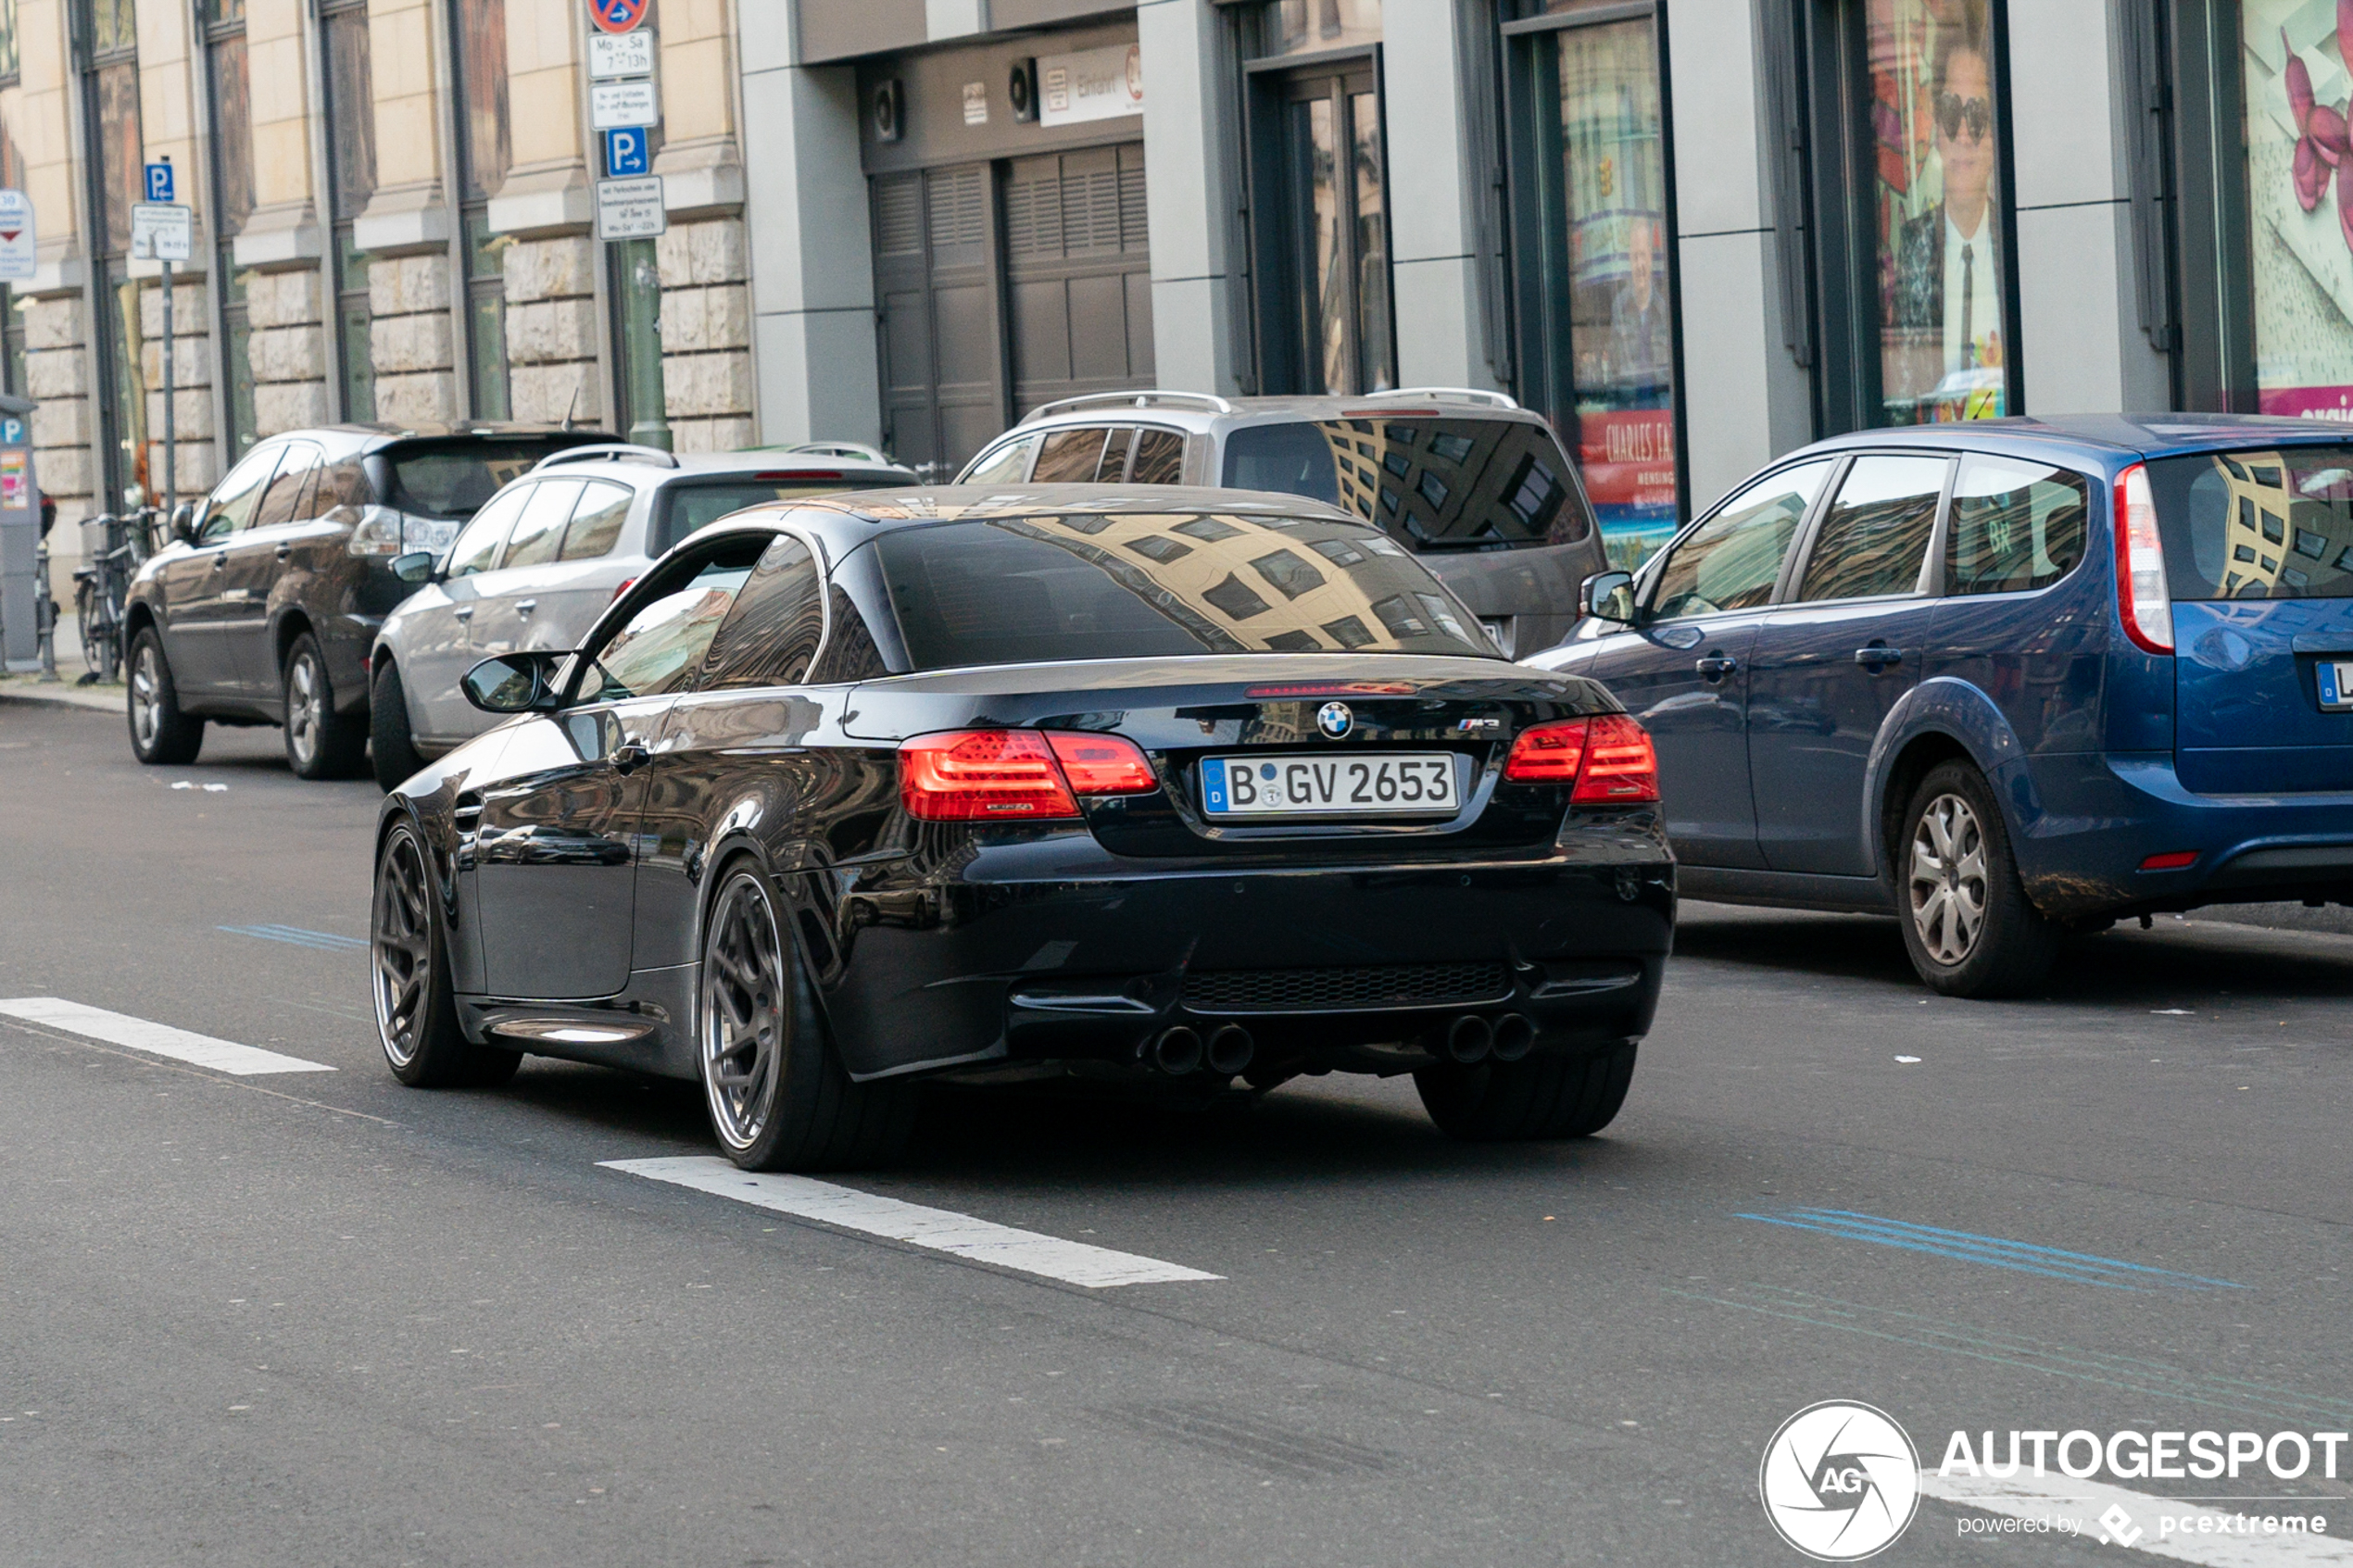 BMW M3 E93 Cabriolet - 14 May 2020 - Autogespot